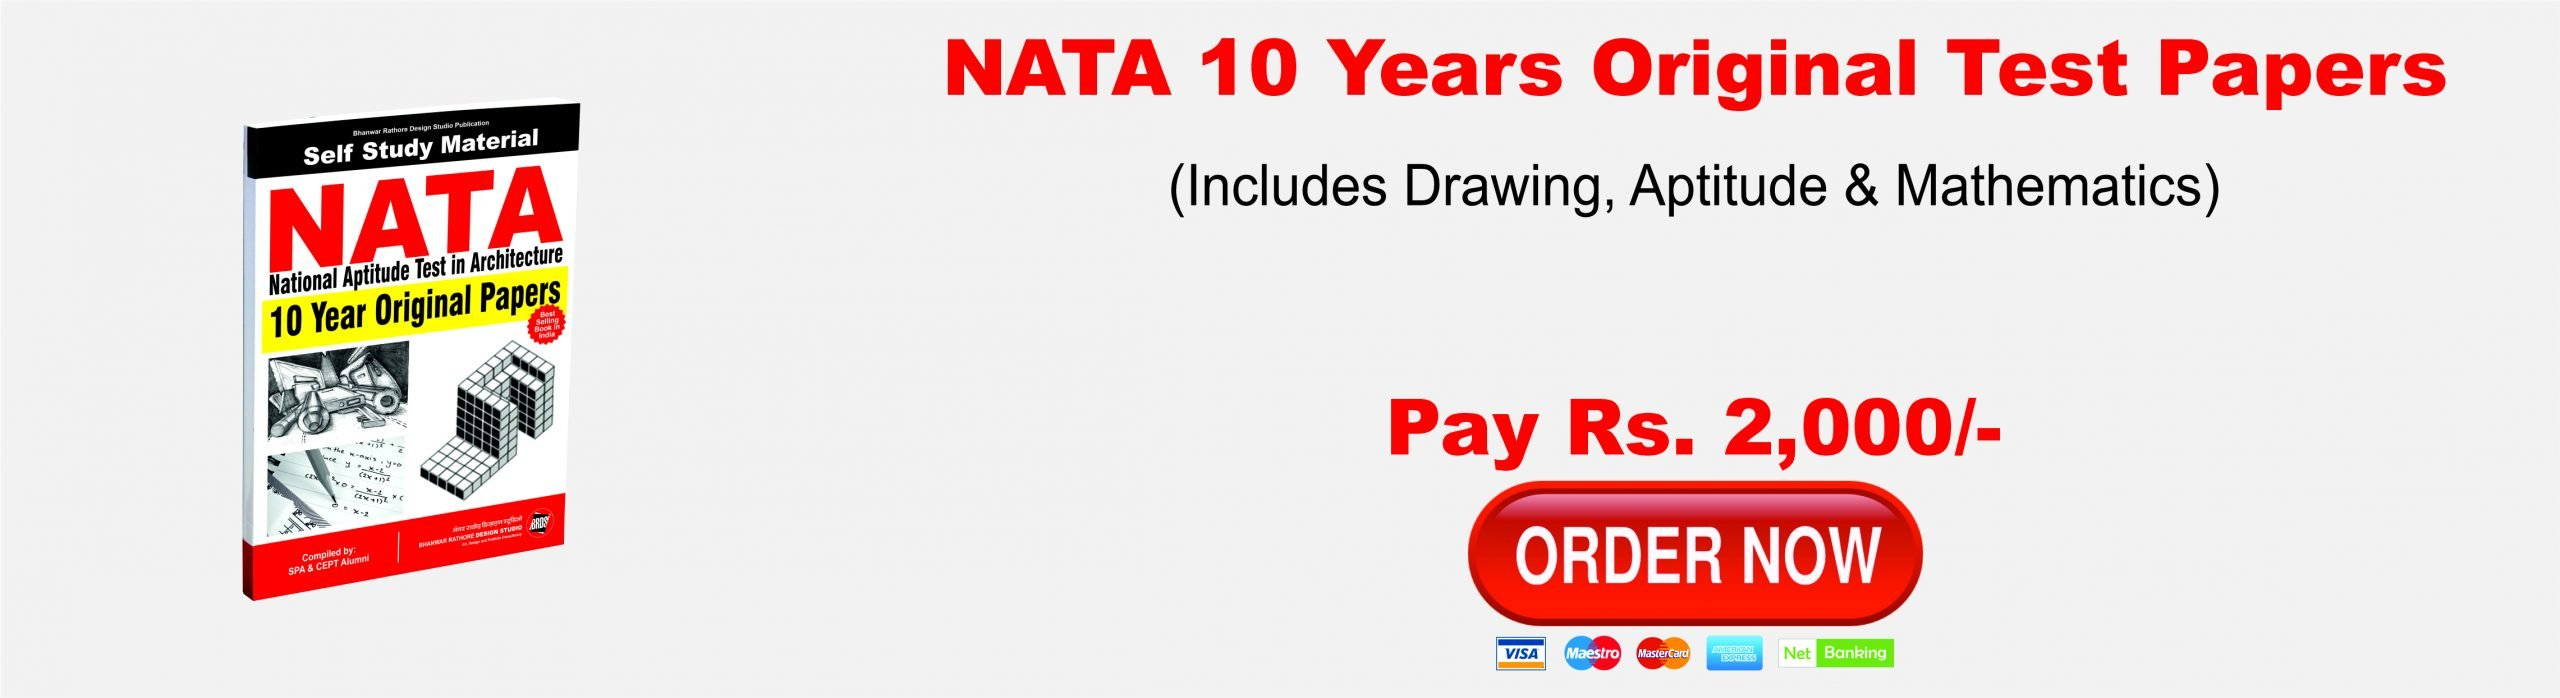 NATA 10 Years Original Test Papers